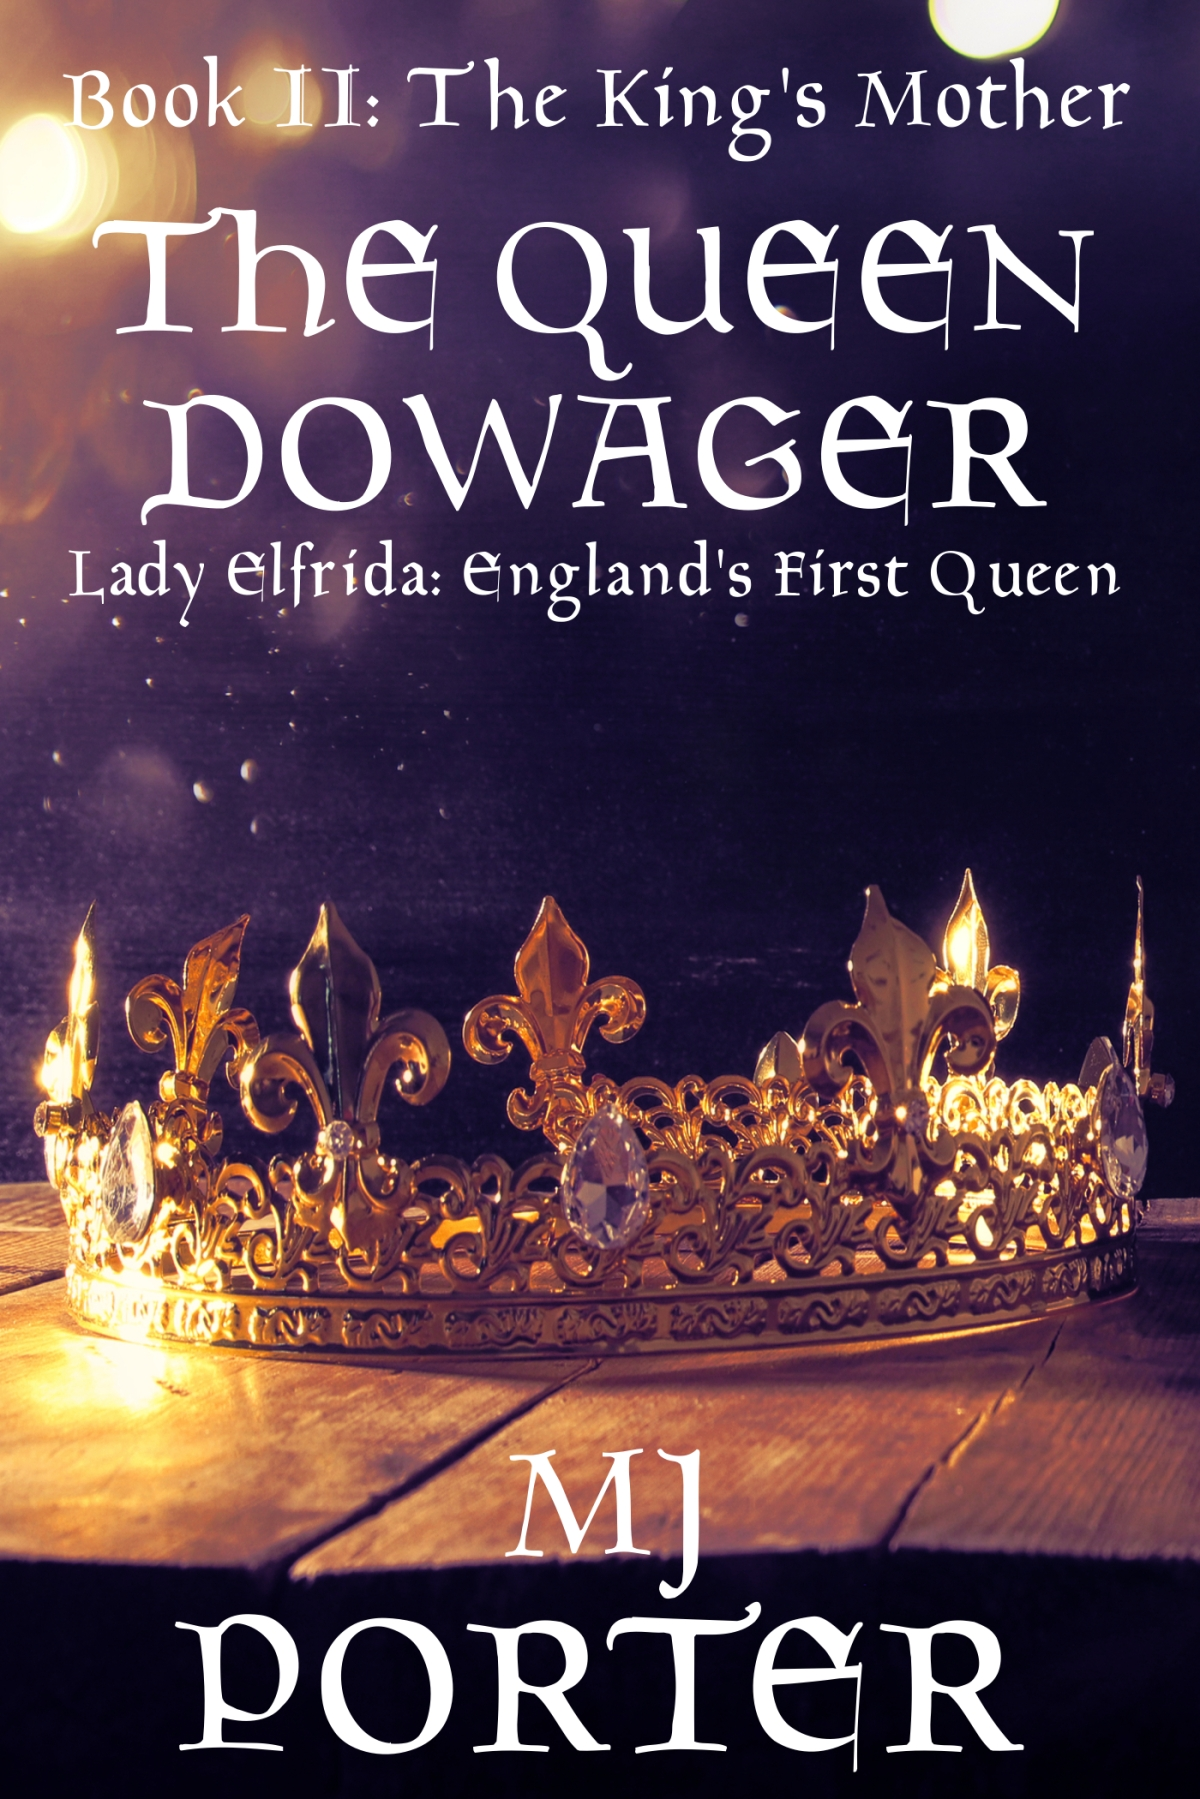 Pre-order alert – The Queen Dowager and Once a Queen – historical fiction – the continuing story of Lady Elfrida